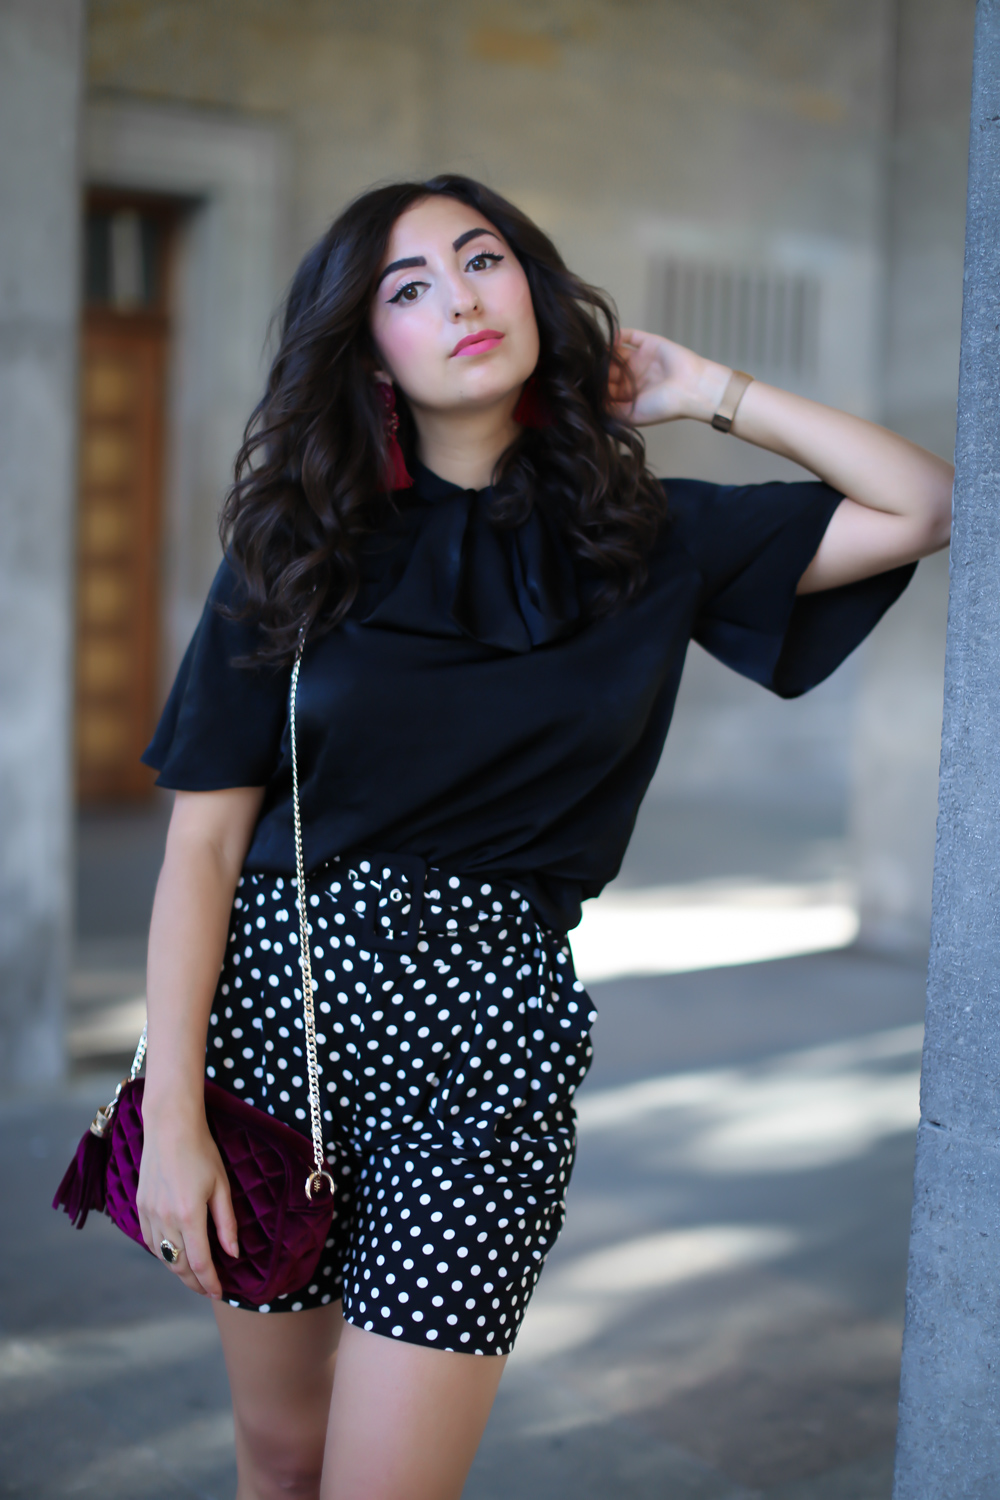 styling dotted print shorts summer evening look highwaist combined bordeaux chic party sommer look streetstyle fashion modeblog berlin blog samieze-7